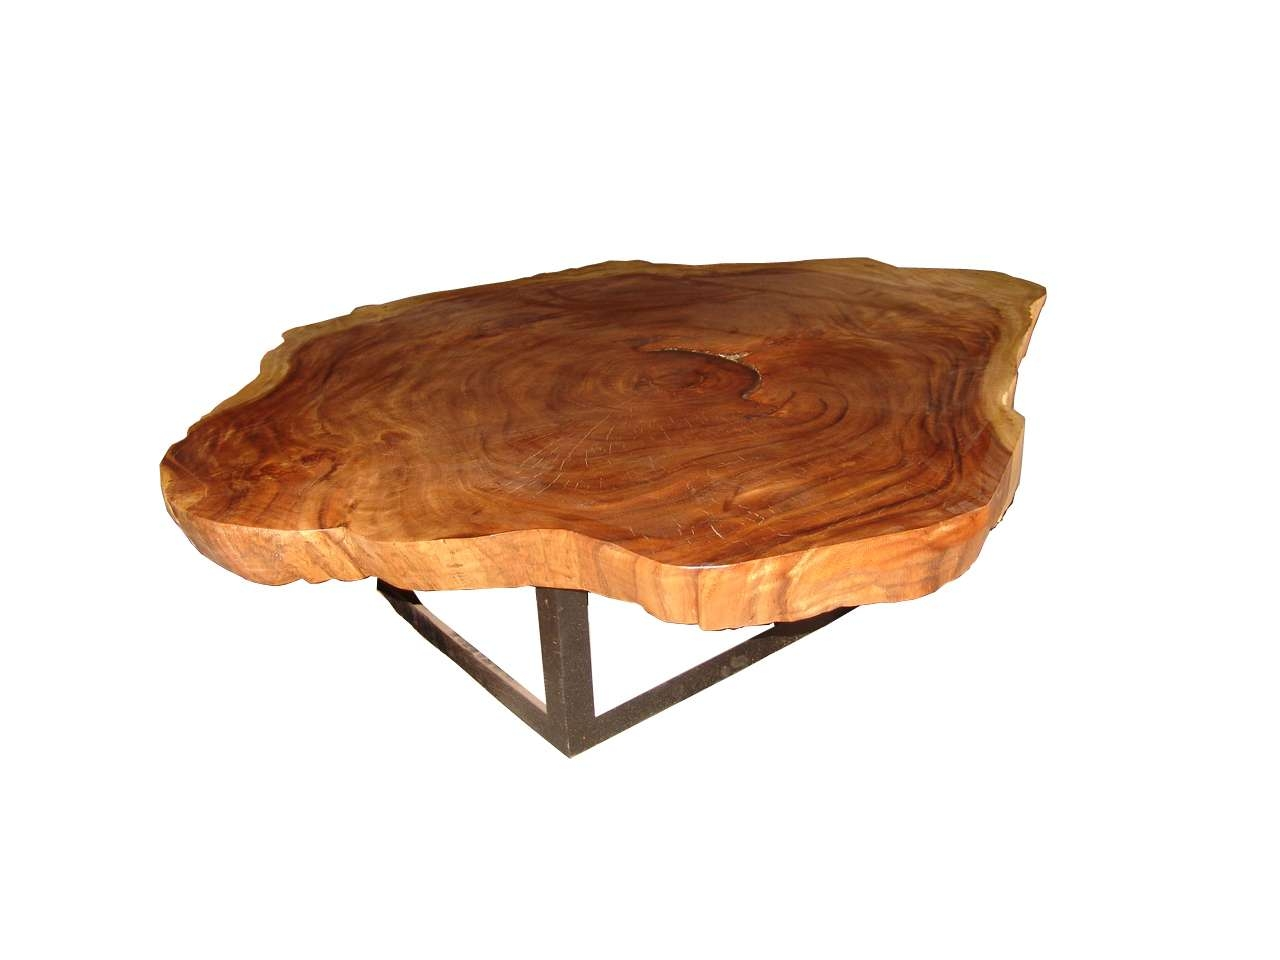 Solid Round Acacia Wood Slab Coffee Tables, On Designer Pages For Popular Solid Round Coffee Tables (View 16 of 20)